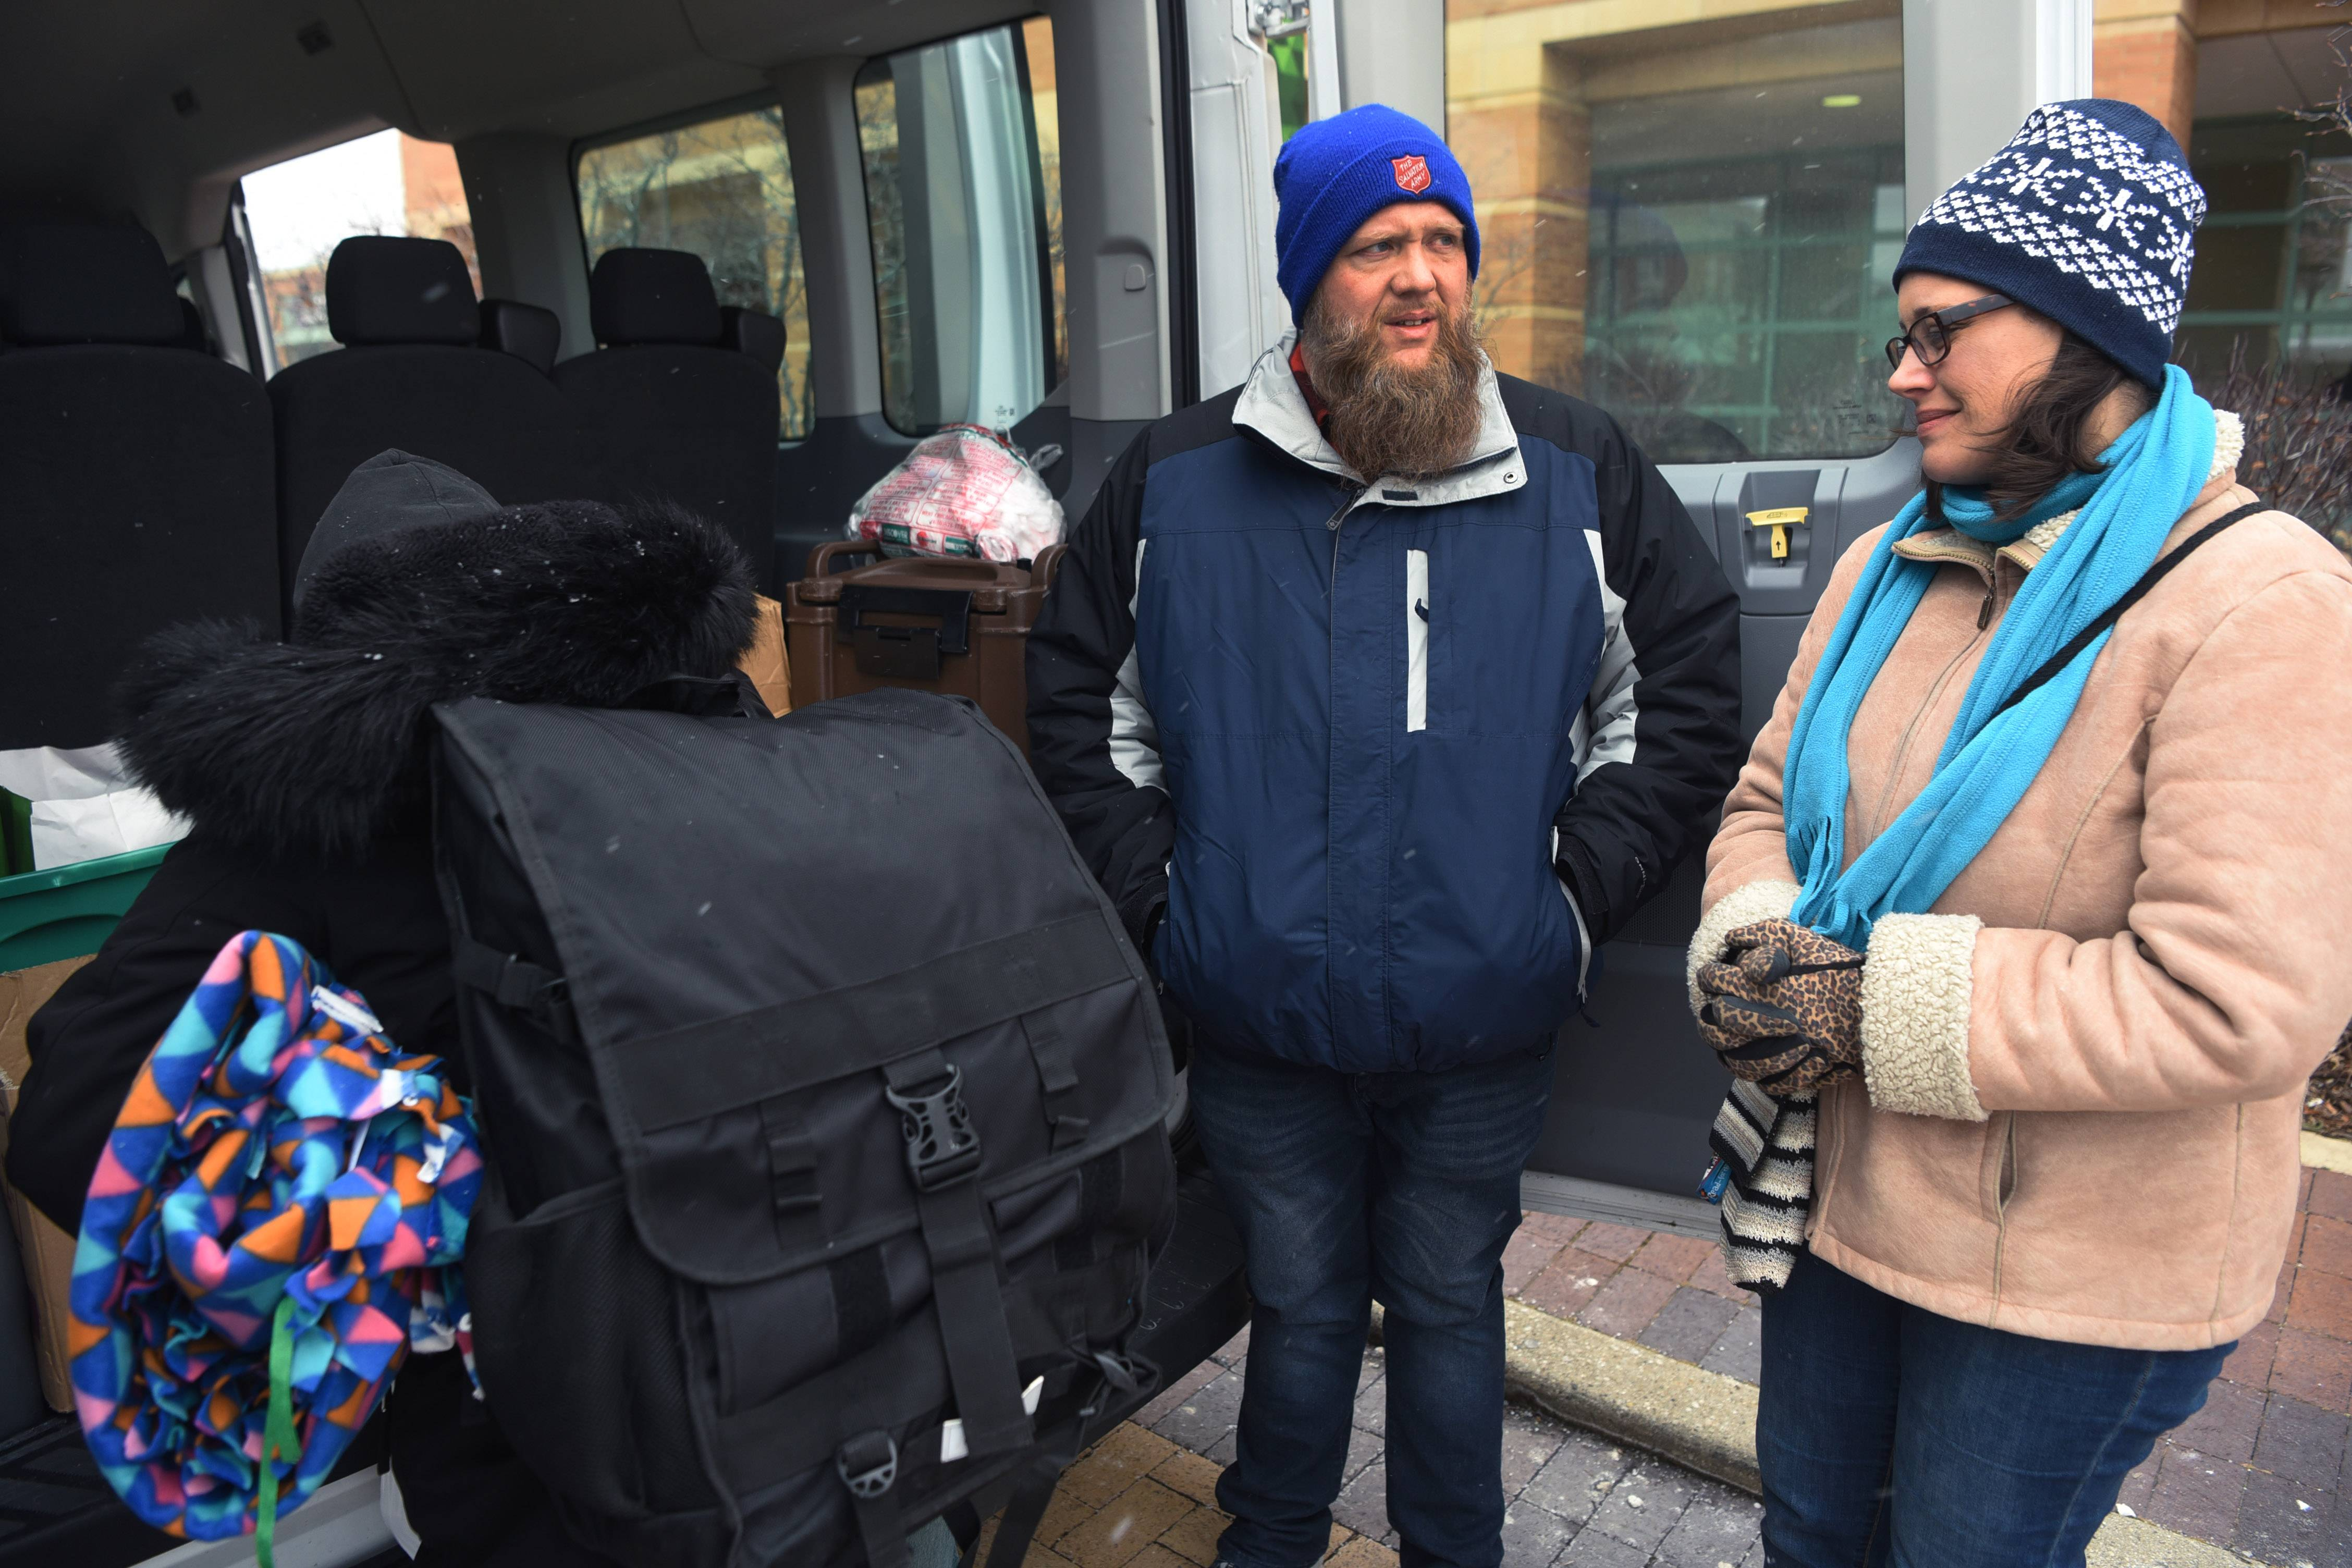 After fetching her a blanket from the back of their Salvation Army van in Des Plaines, Bill and Debbi Middendorp help a homeless woman choose from a selection of food items.